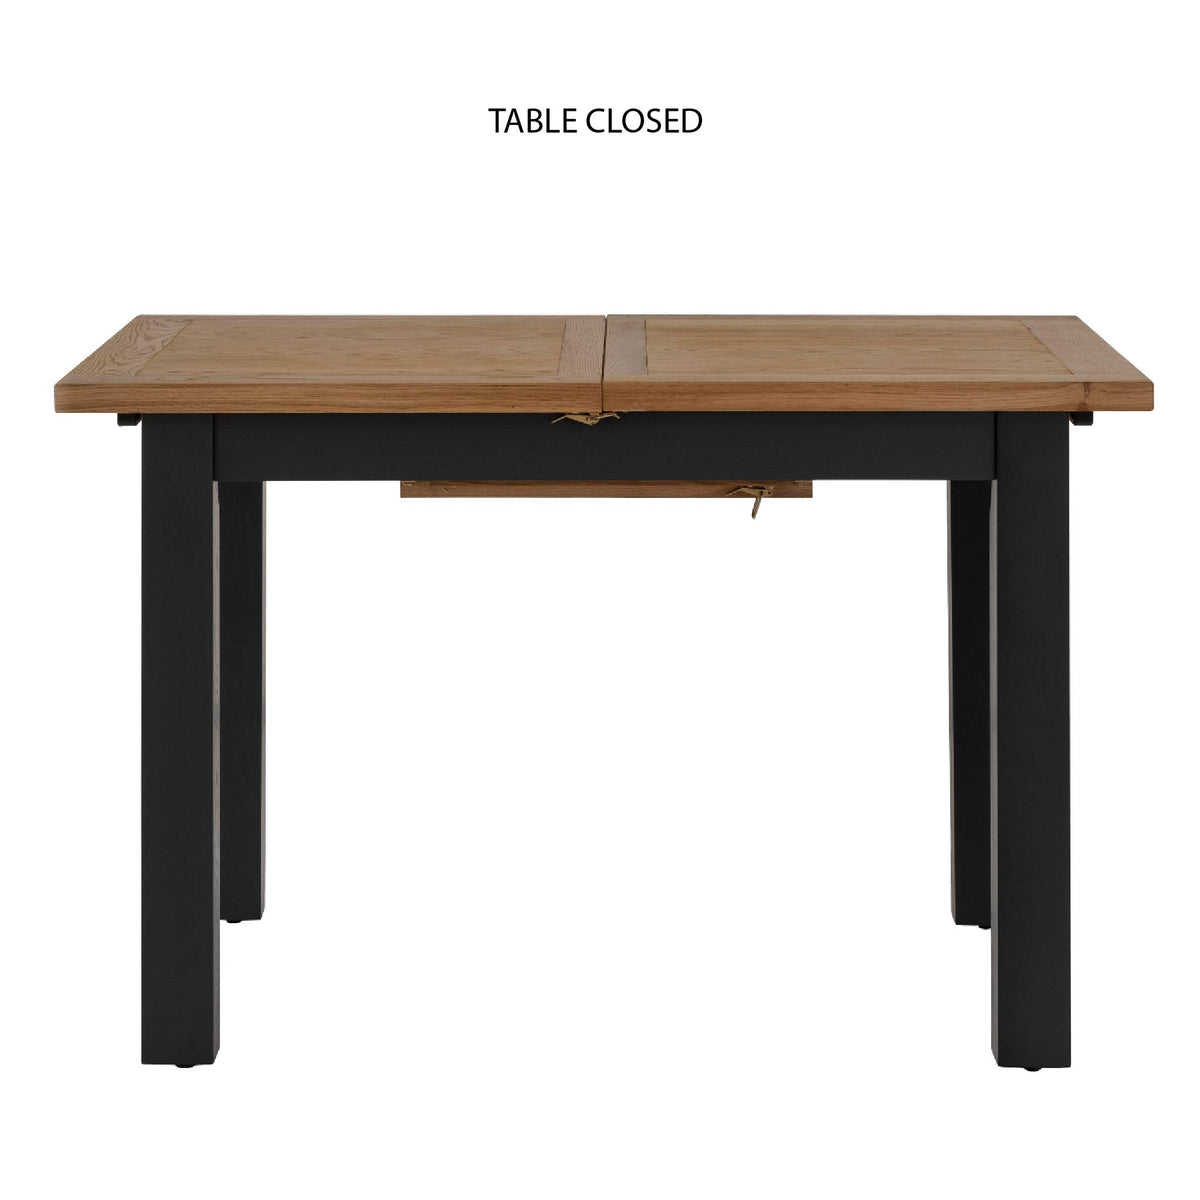 Charlestown Black Extendable Dining Table - Closed View Length of Table